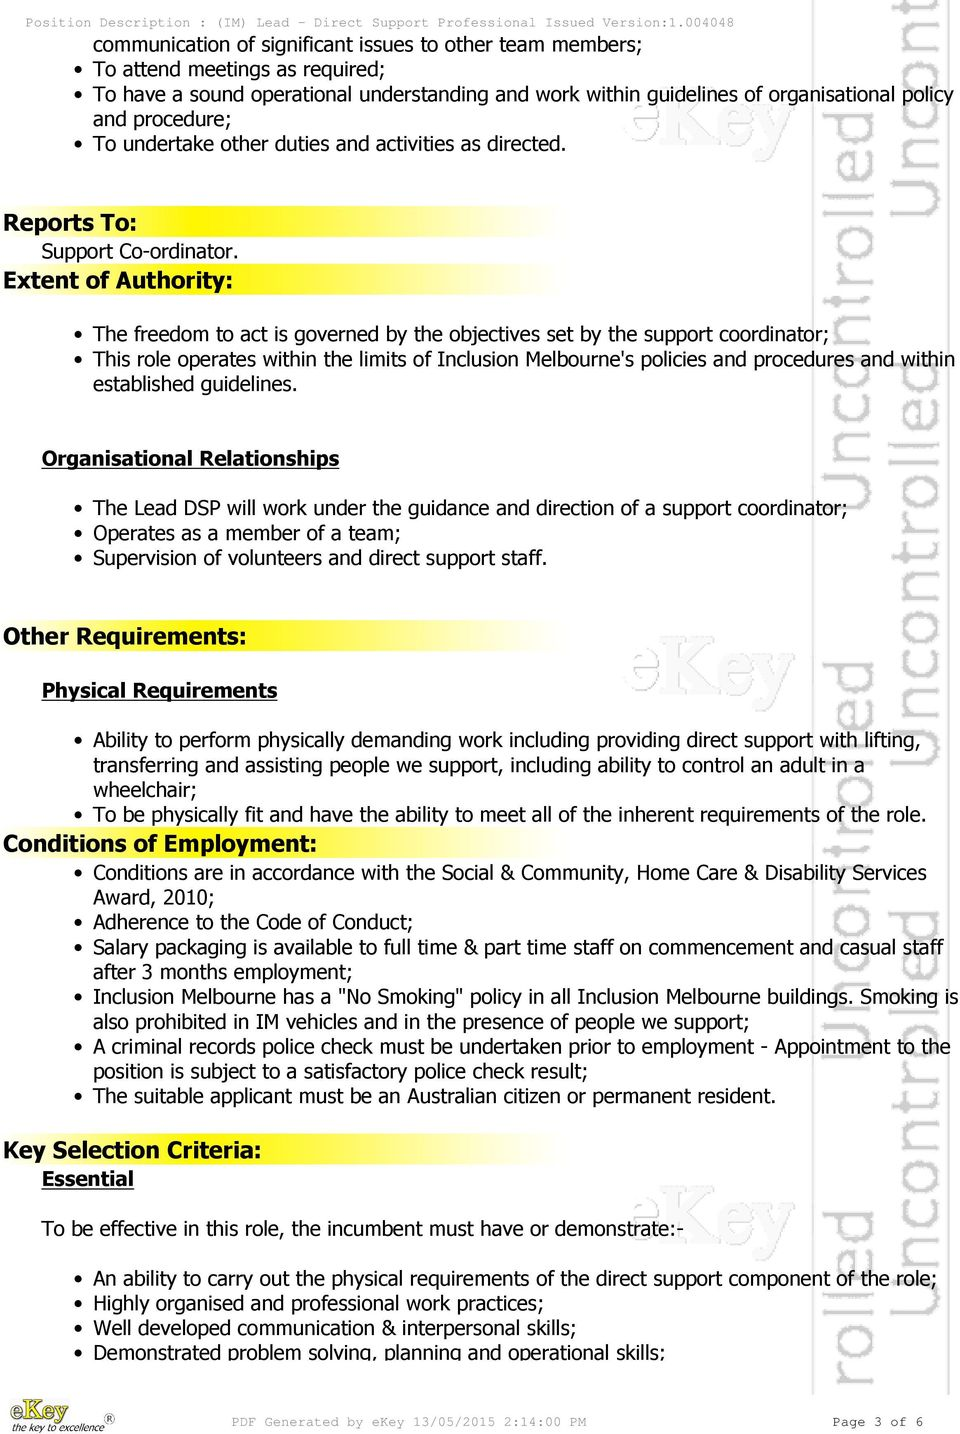 Extent of Authority: The freedom to act is governed by the objectives set by the support coordinator; This role operates within the limits of Inclusion Melbourne's policies and procedures and within